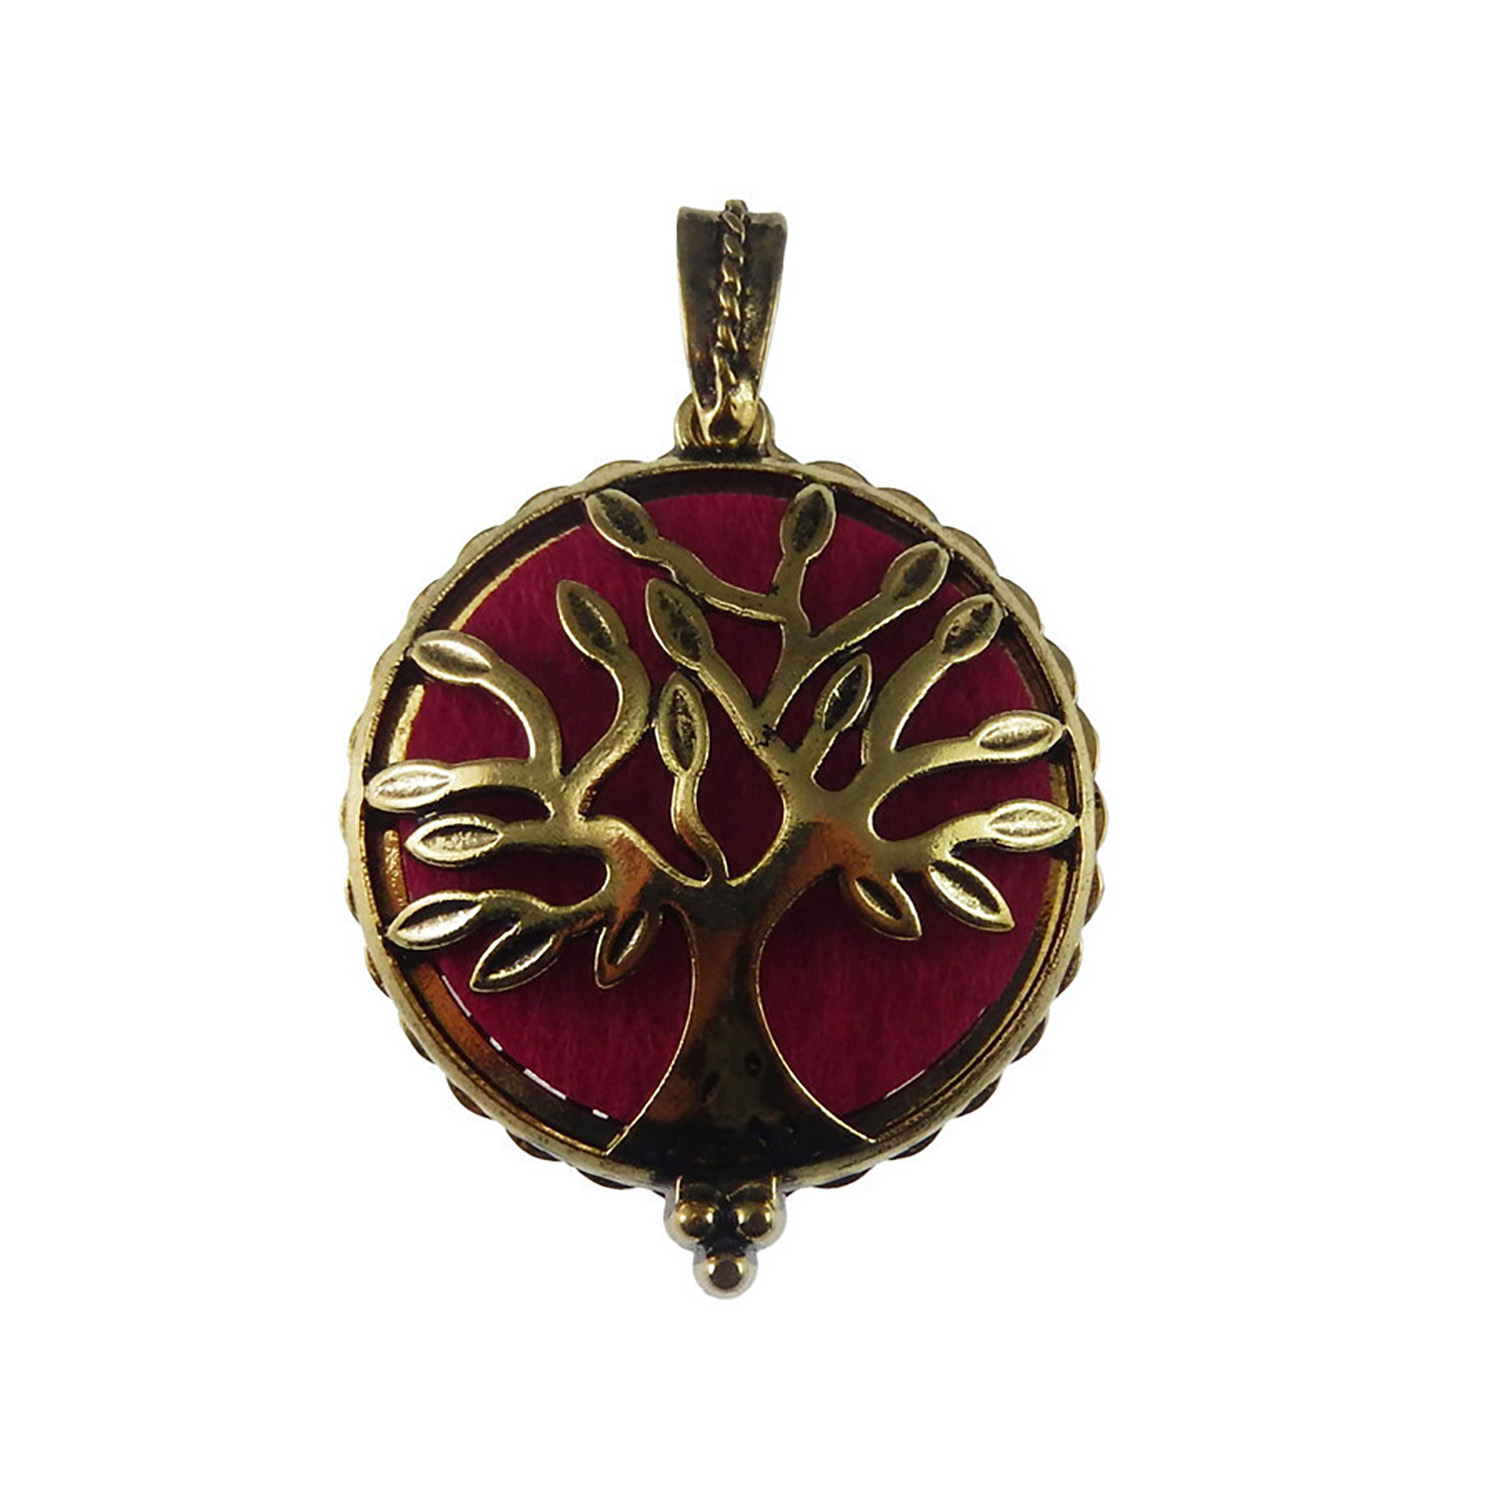 Vintage Bronze Brass Hollow Locket Pendant Charms Necklace Making Findings 2pcs